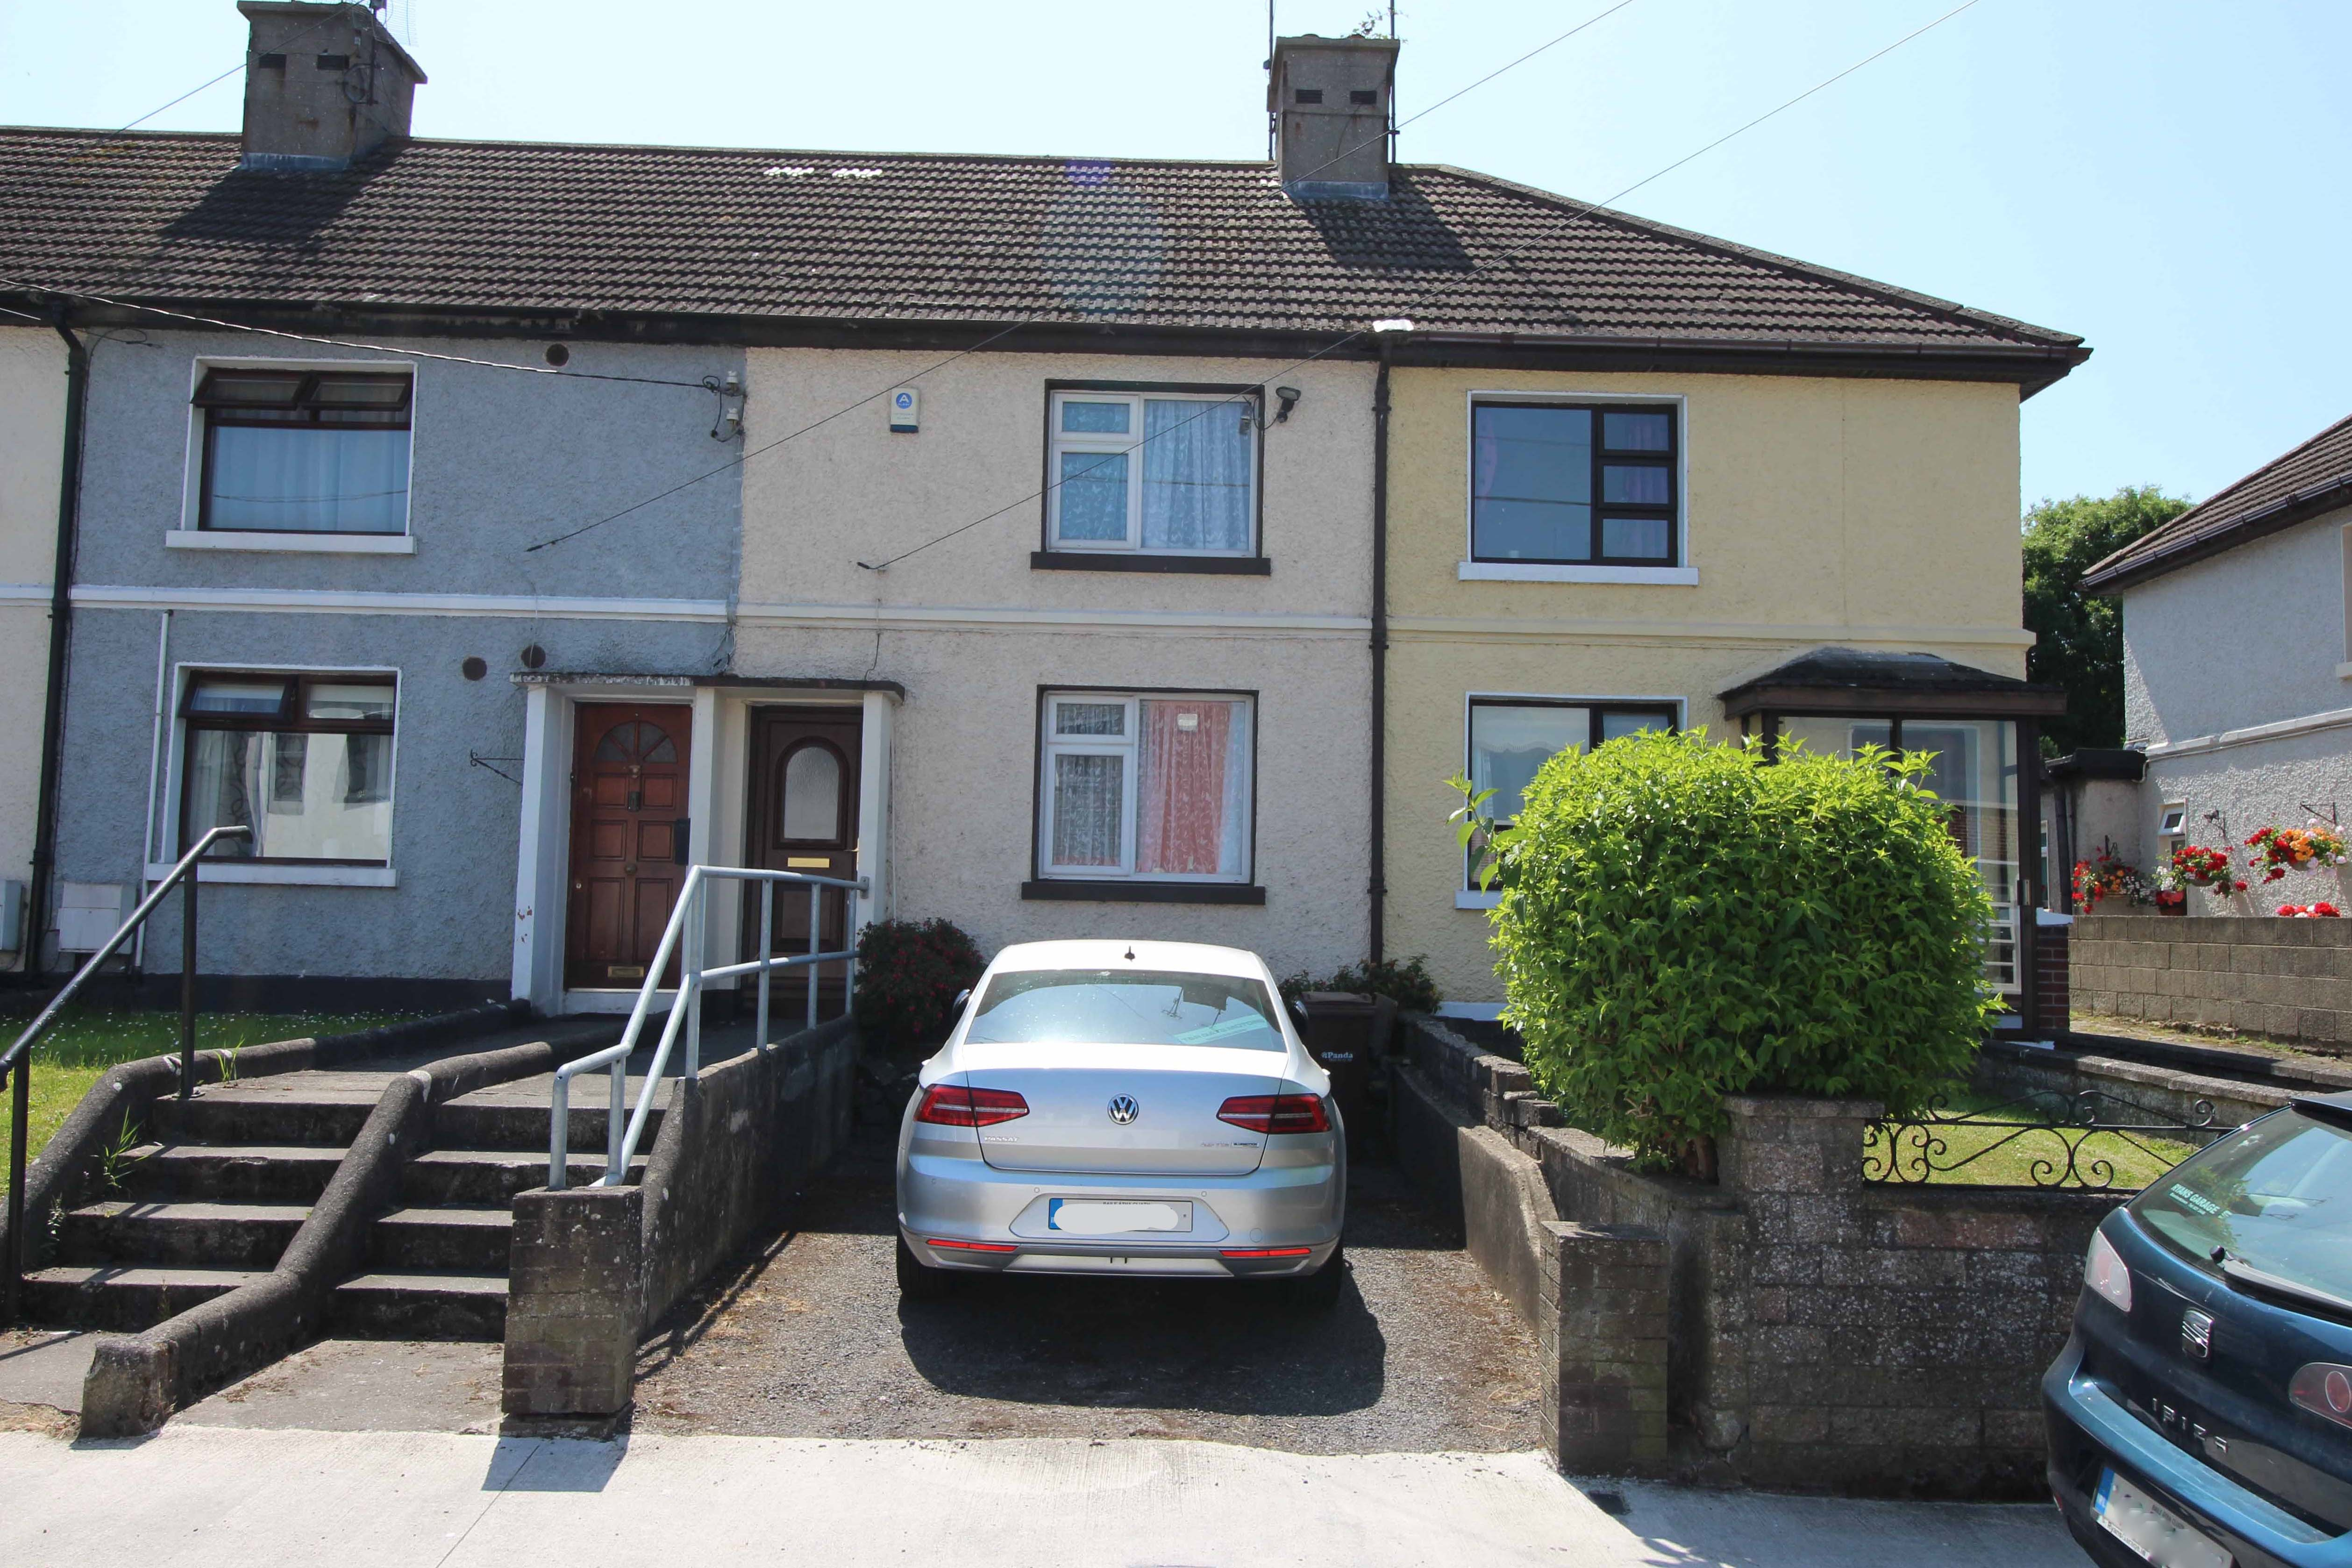 9 Priest's Lane, Drogheda, Co. Louth